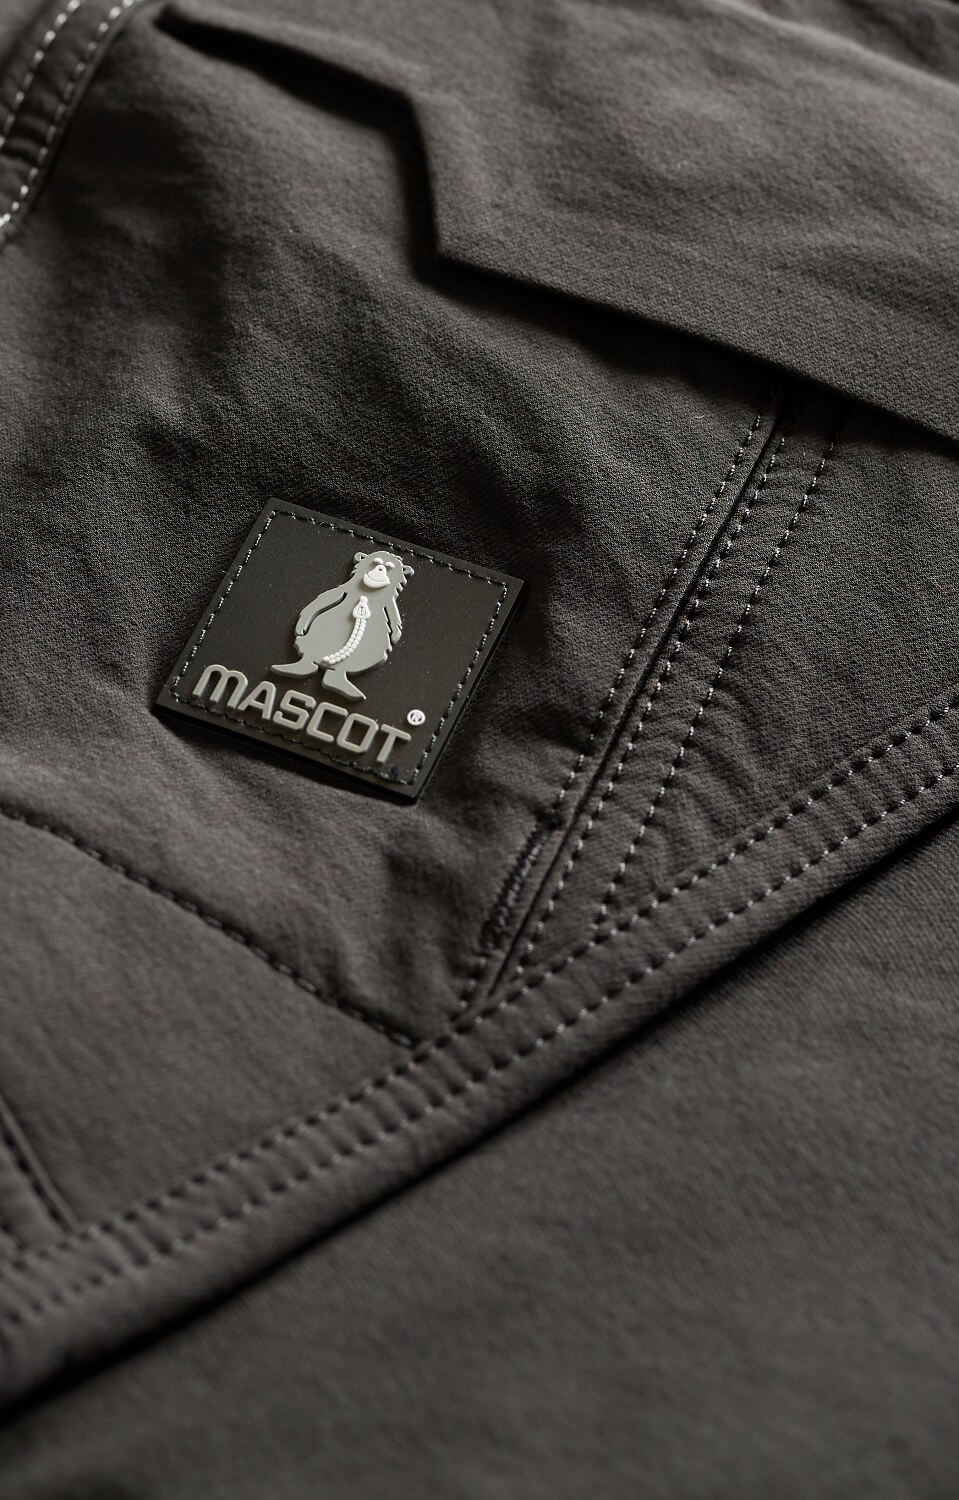 Trousers - Black - Detail - MASCOT® ACCELERATE